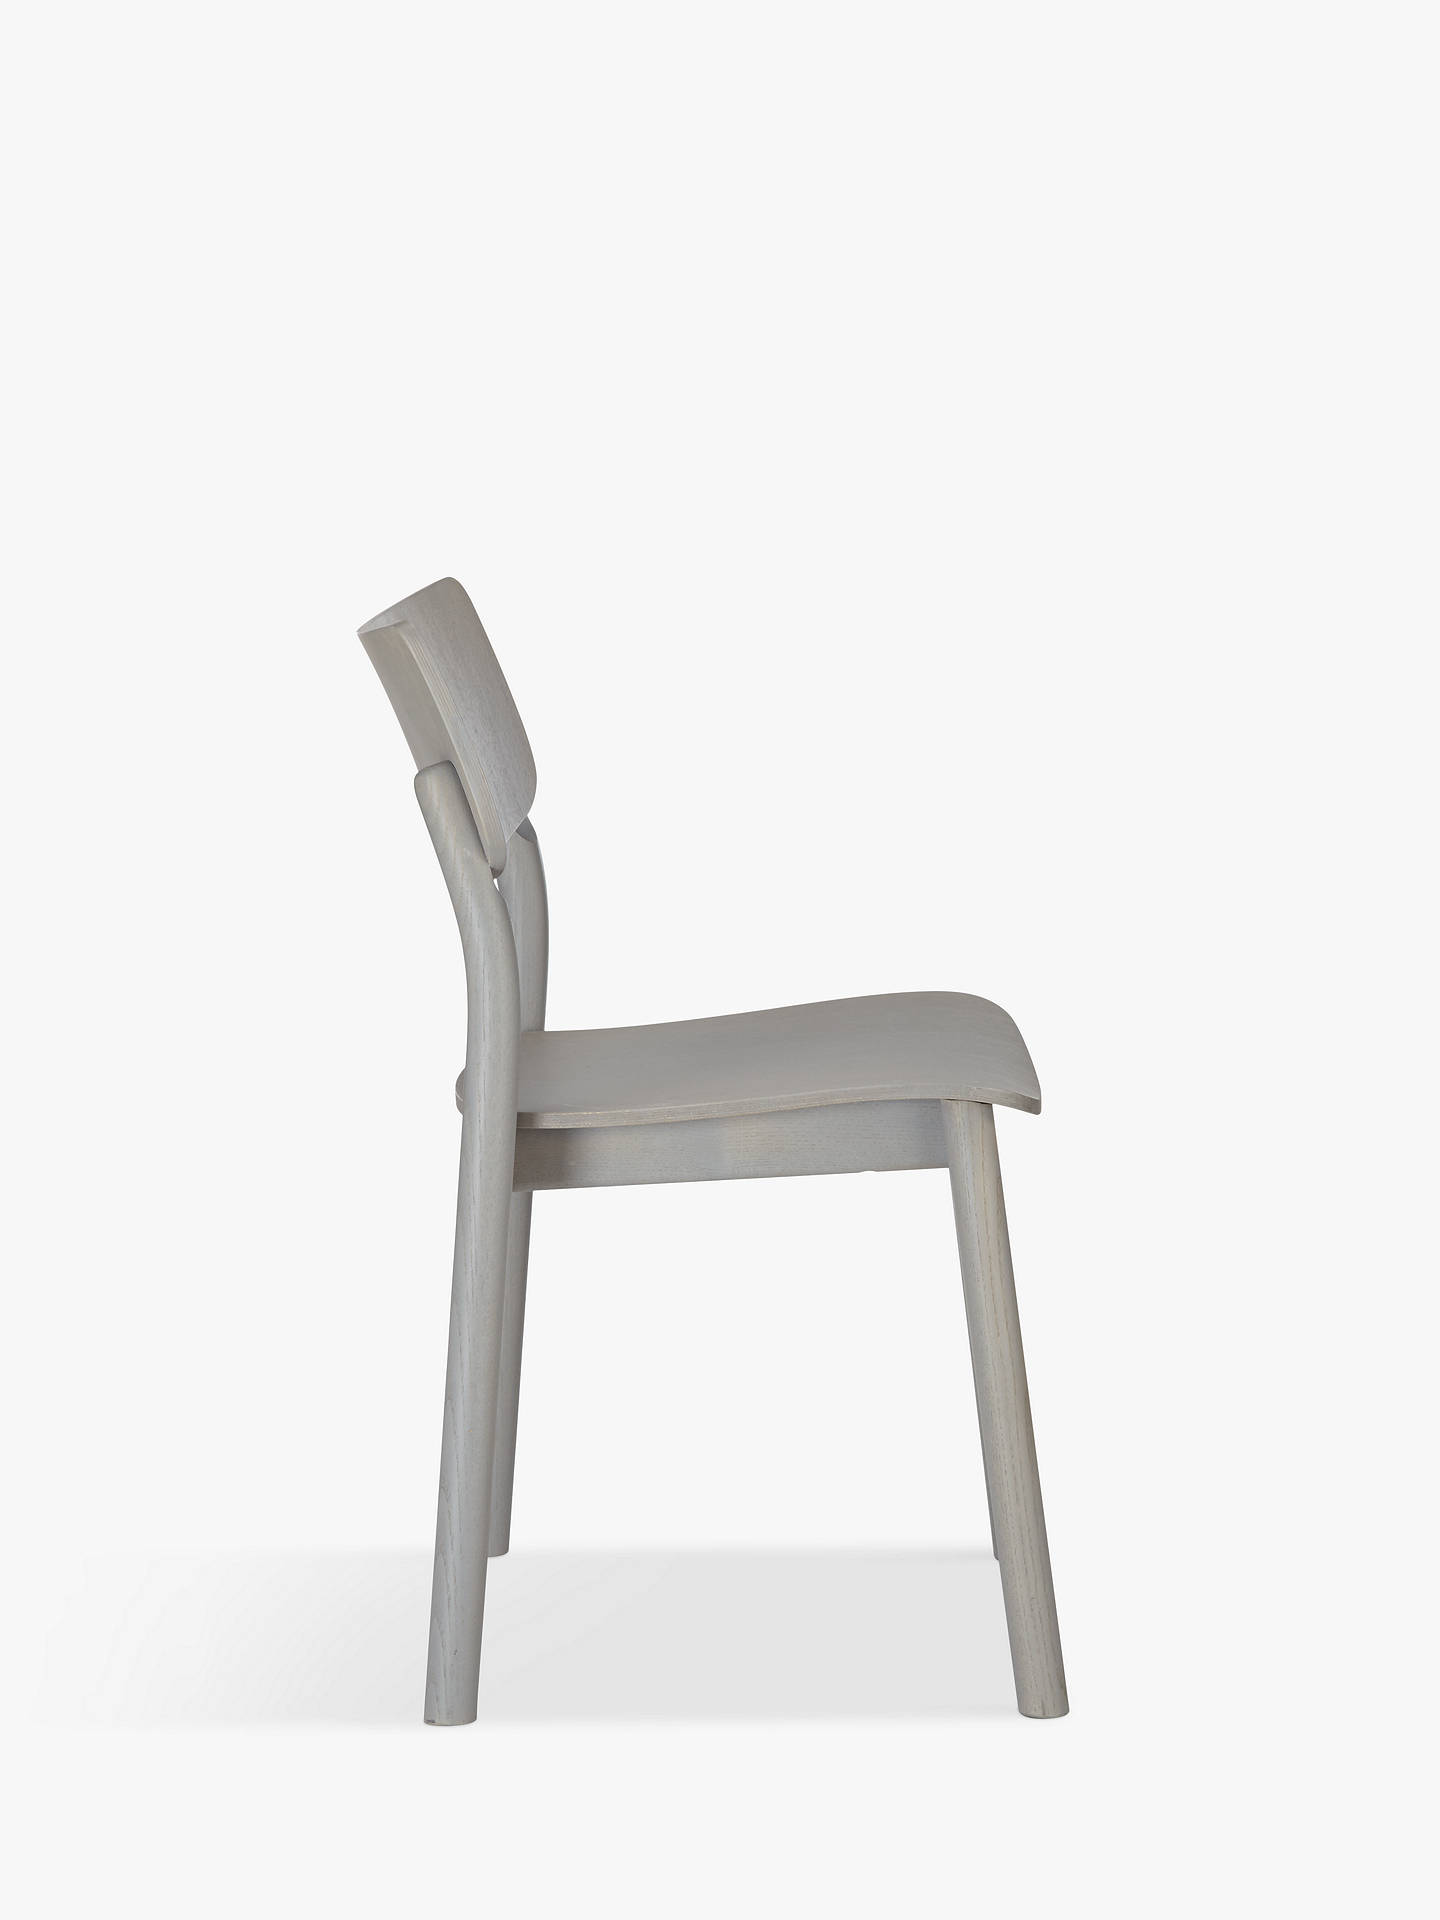 Design project by john lewis dining chair at john lewis partners for John lewis home design service reviews